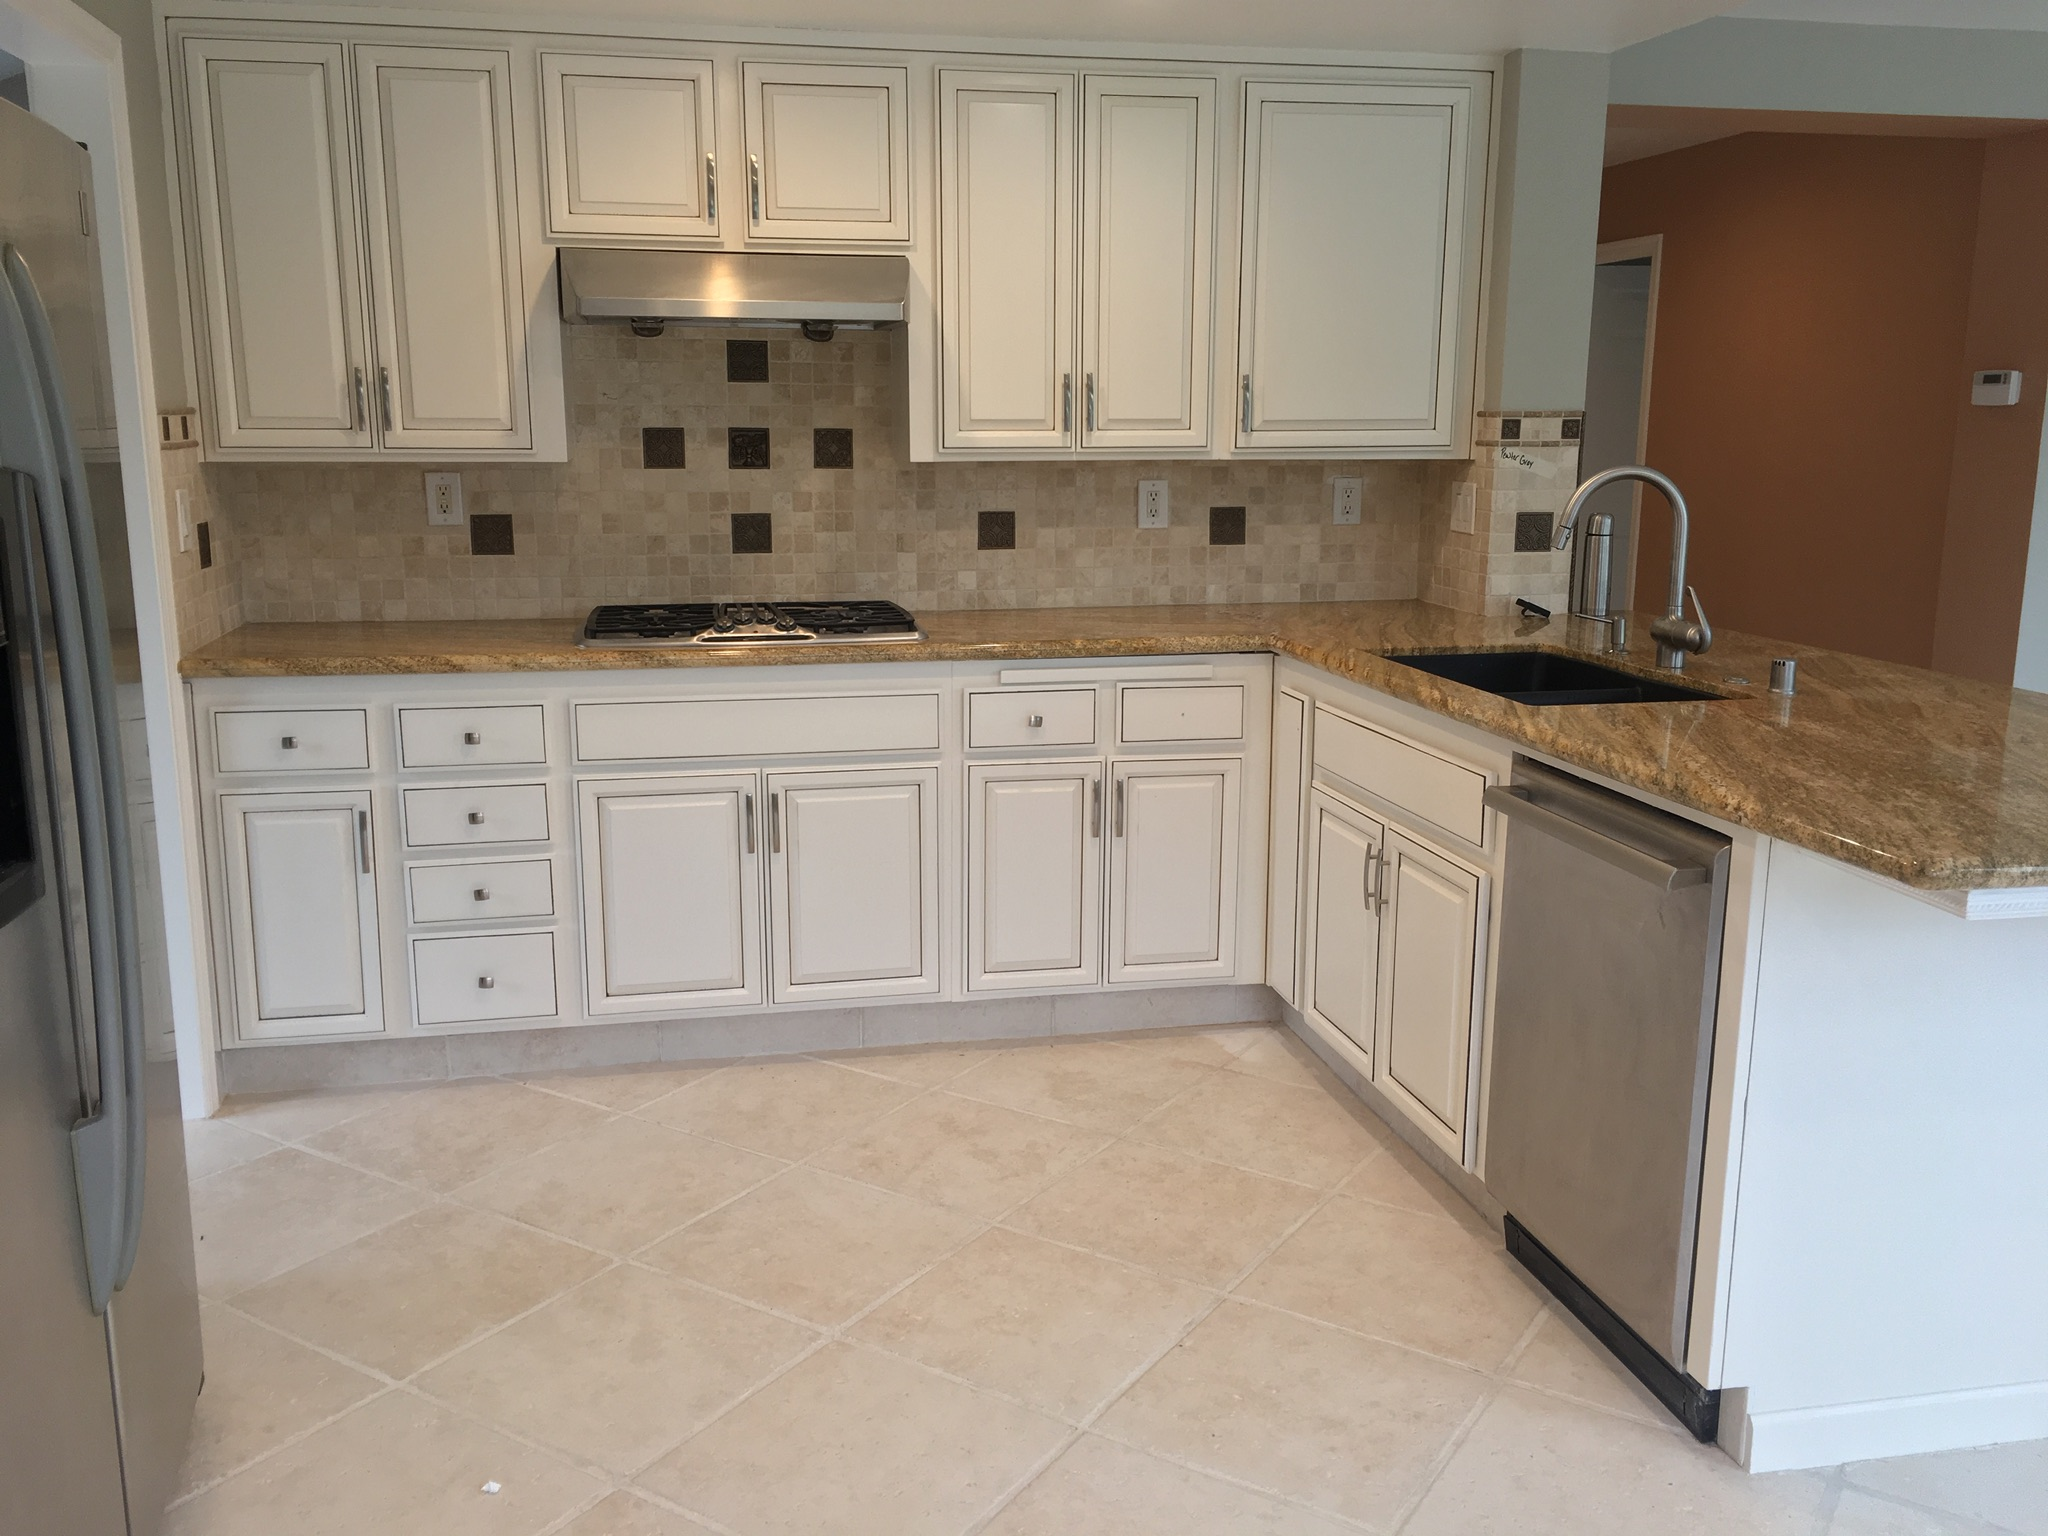 Sunrise Kitchen Cabinets Cabinets Img 115215 All Things Interior